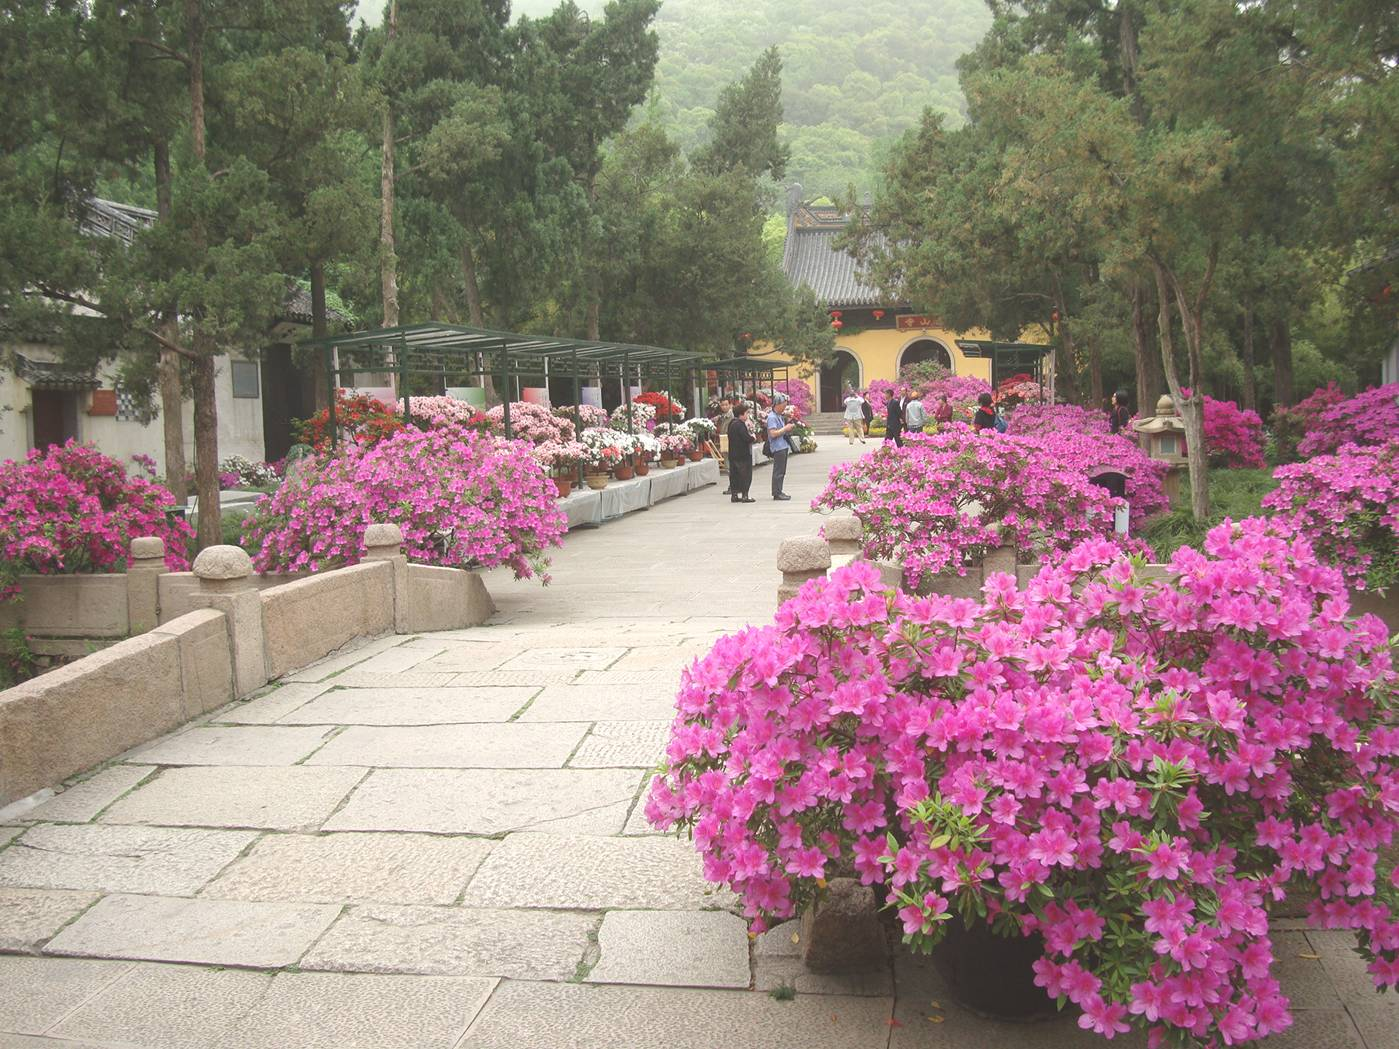 Picture:  Flowers everywhere along the path in Xi Hui Park, Wuxi, China